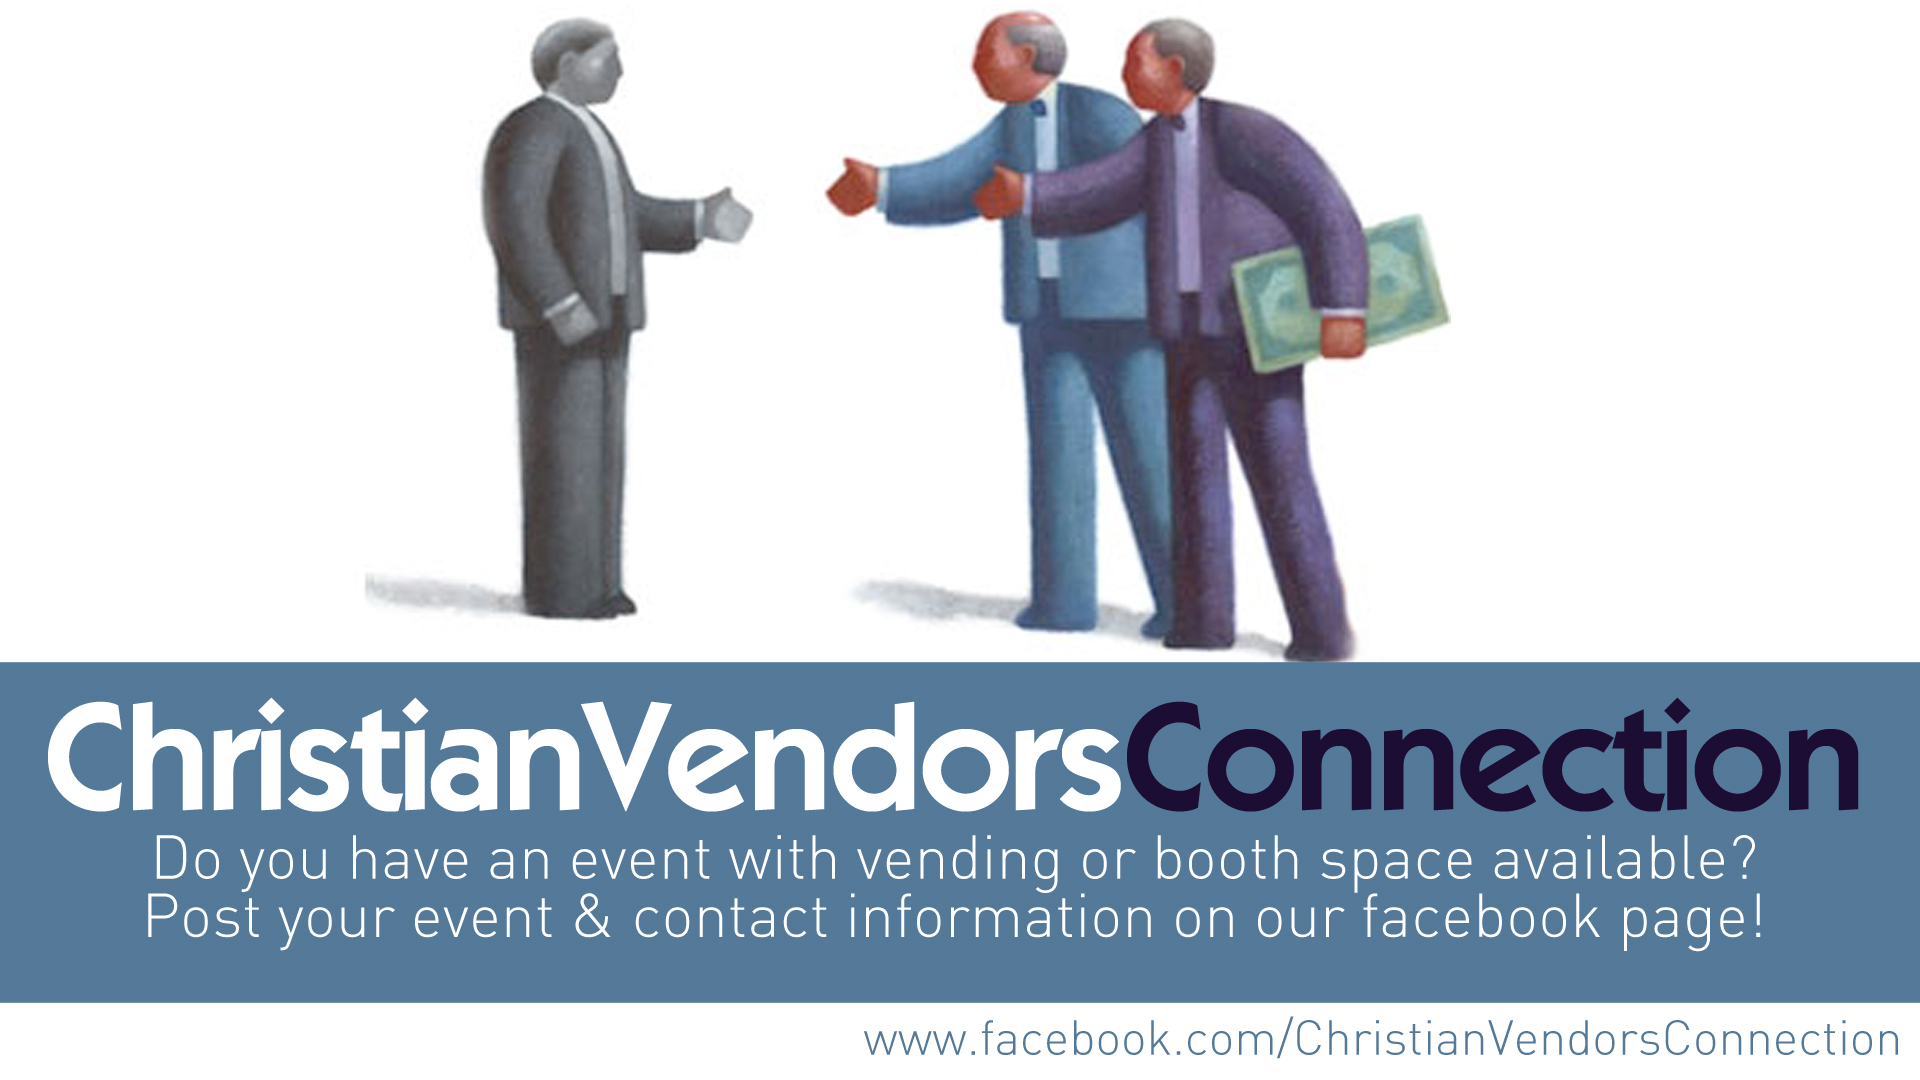 Christian Vendors Connection